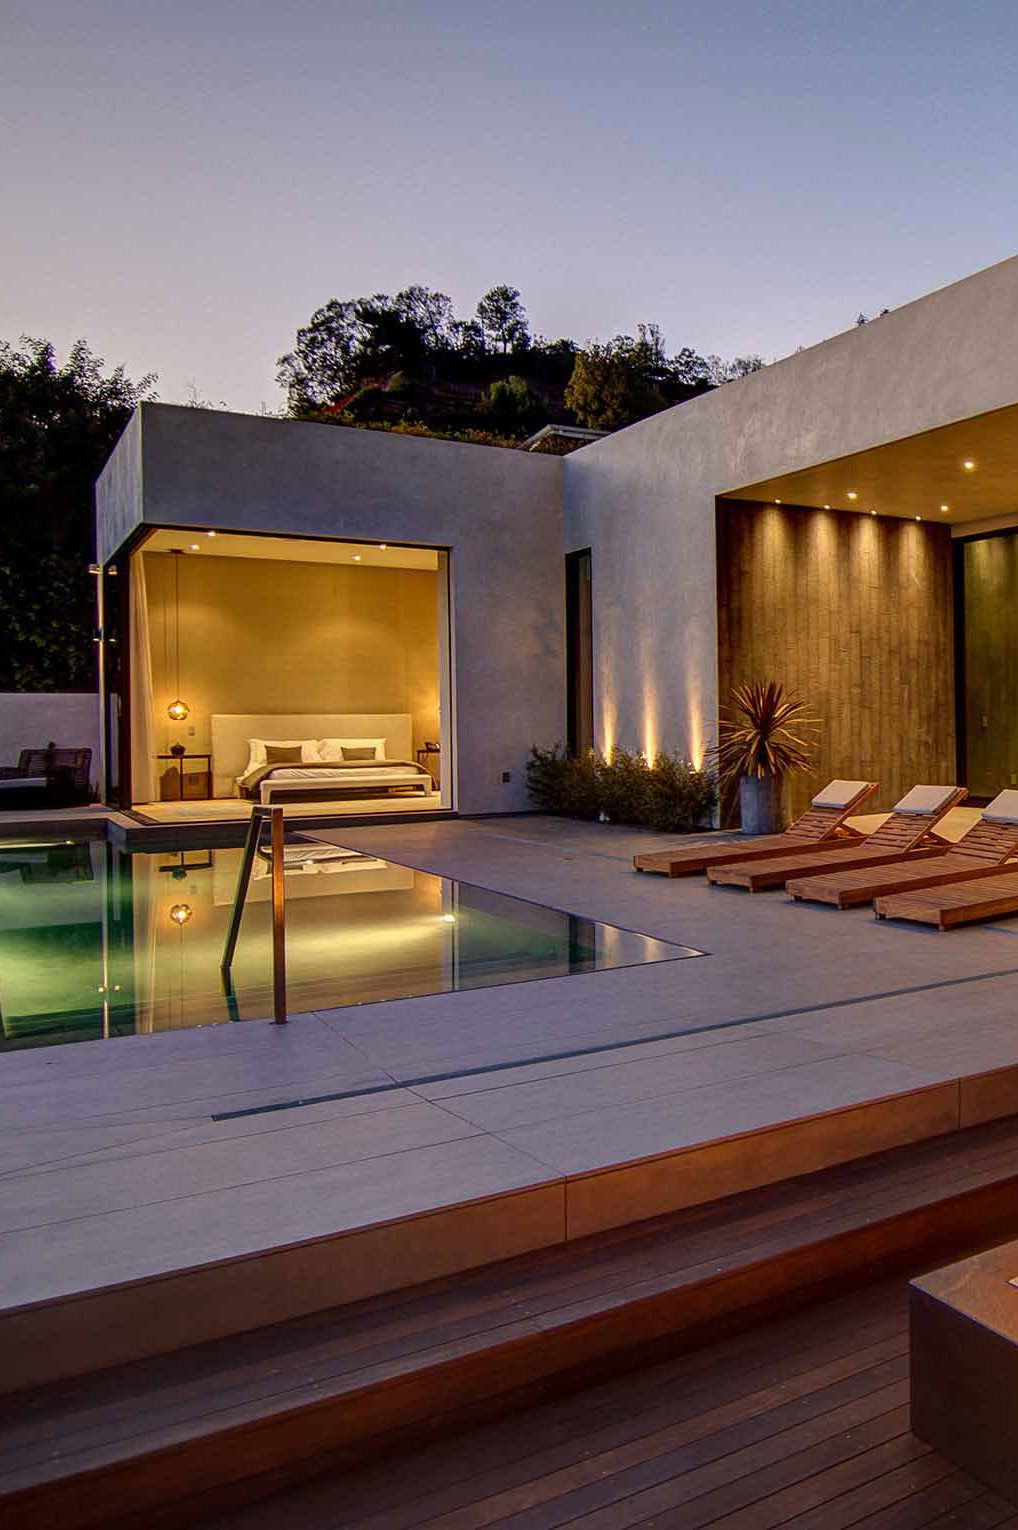 Modern Home Located In Montonate Italy: Designed By La Kaza In Collaboration With Meridith Baer